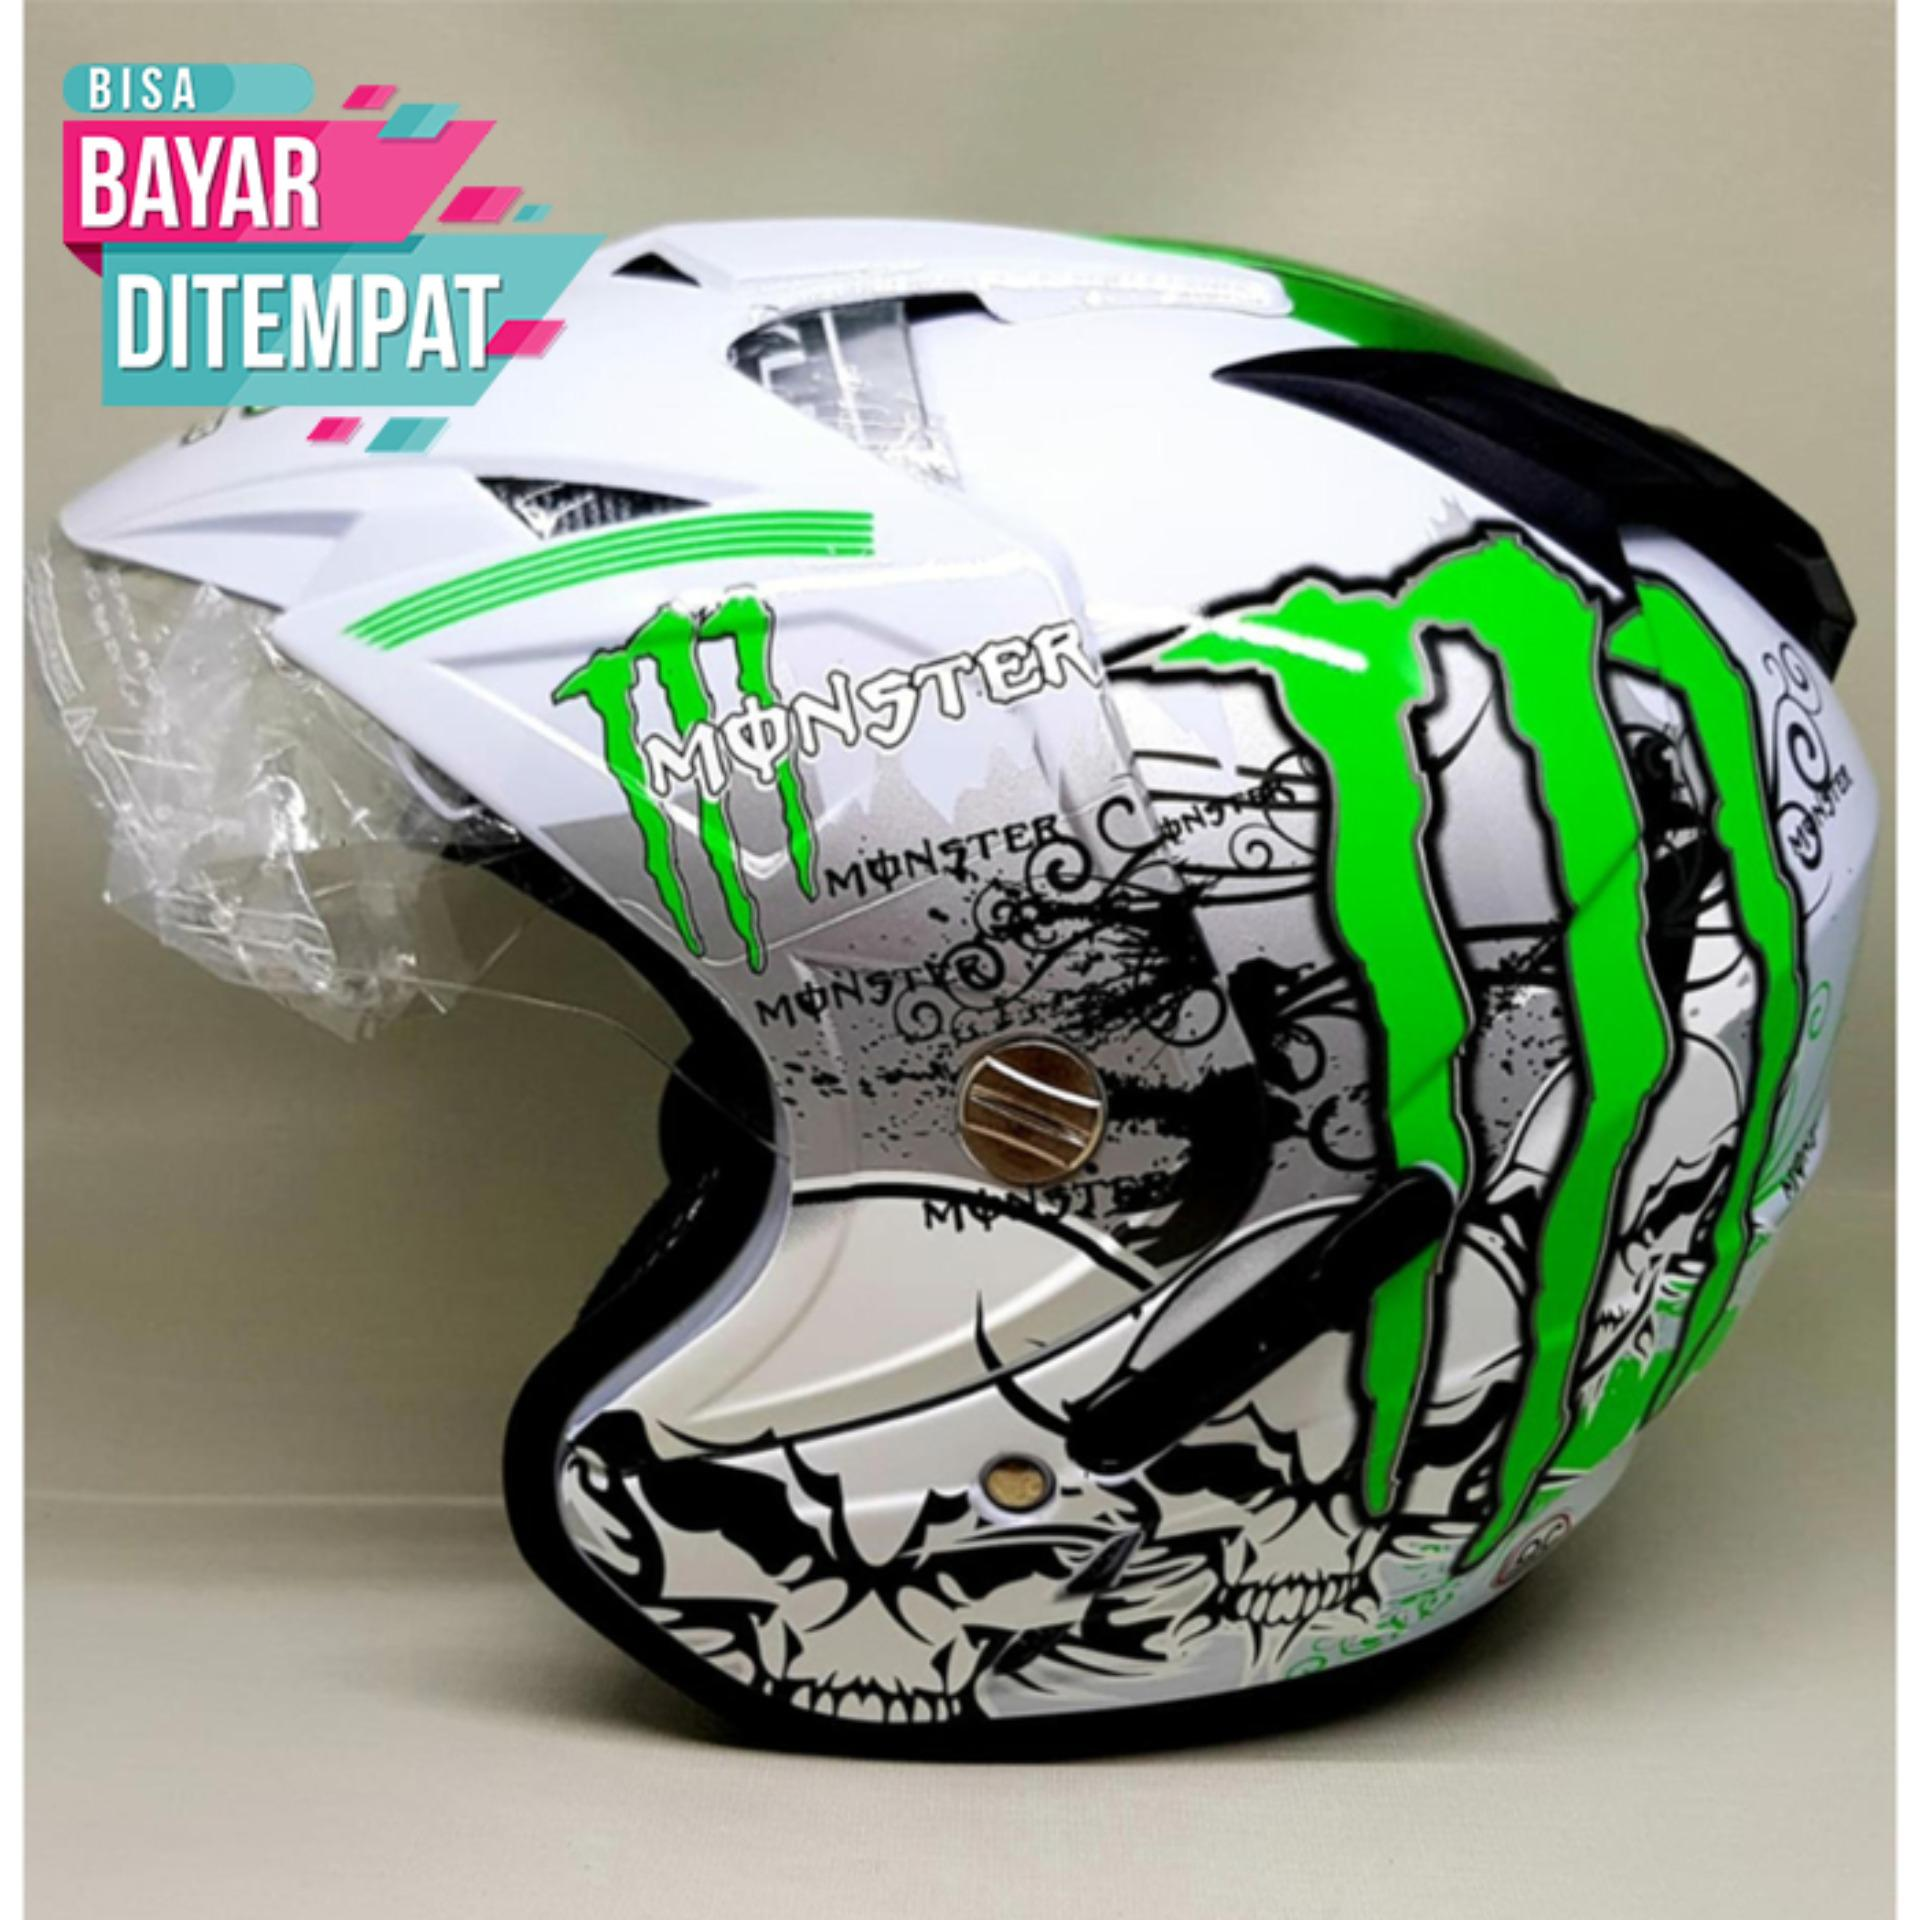 Fitur Snail Helmet Motocross Single Visor Mx 310 Supermoto Motif White With Revo Blue Double Tgp Monster Putih